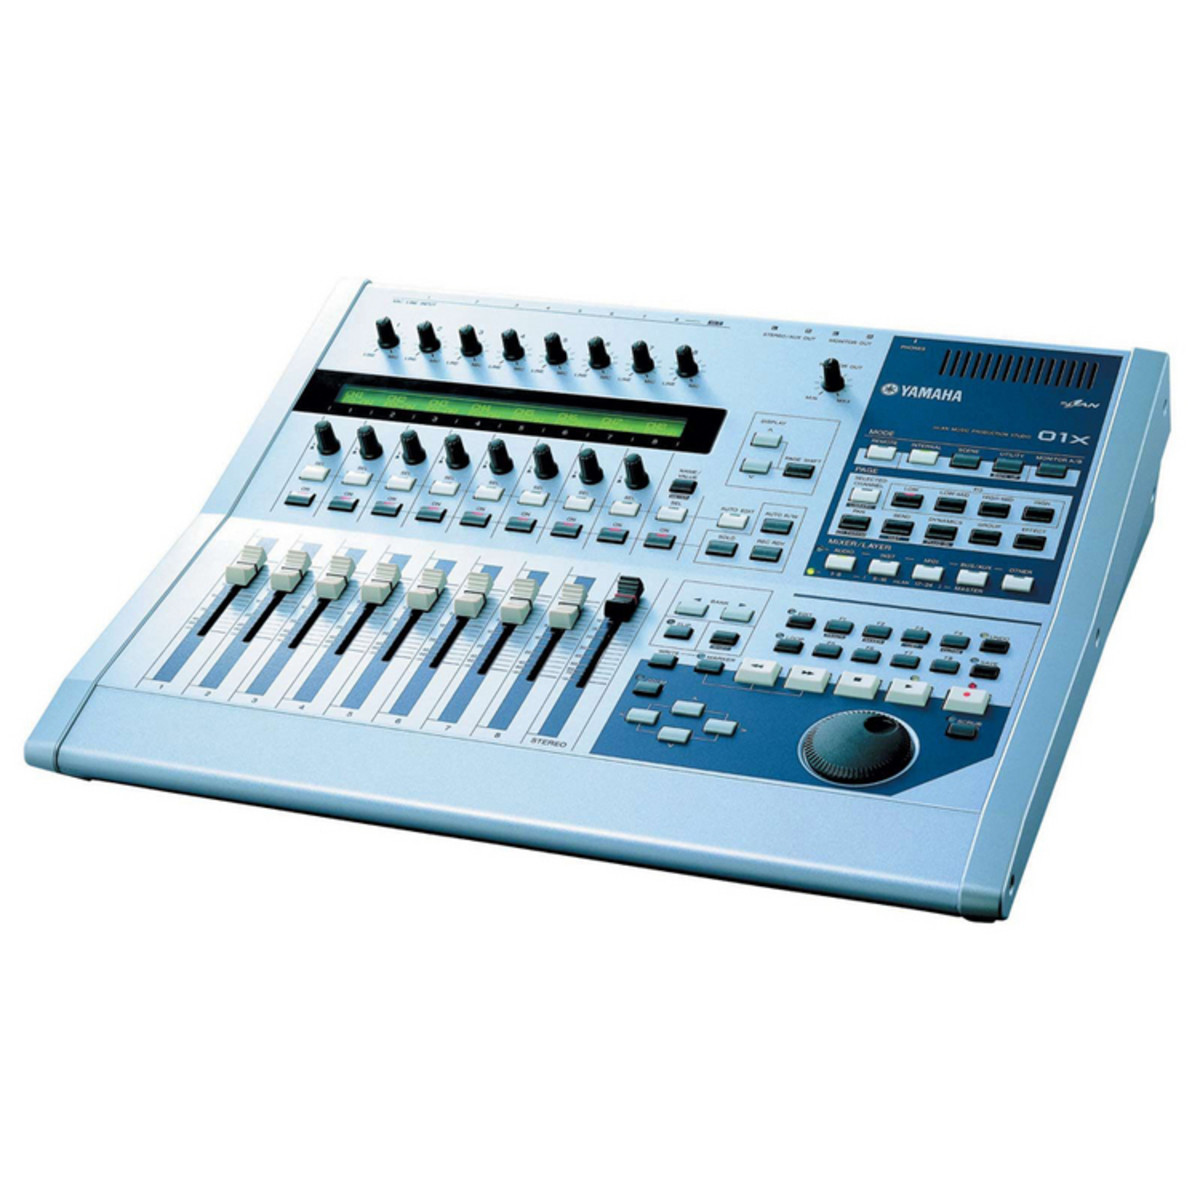 yamaha 01x mlan music production interface remote and. Black Bedroom Furniture Sets. Home Design Ideas